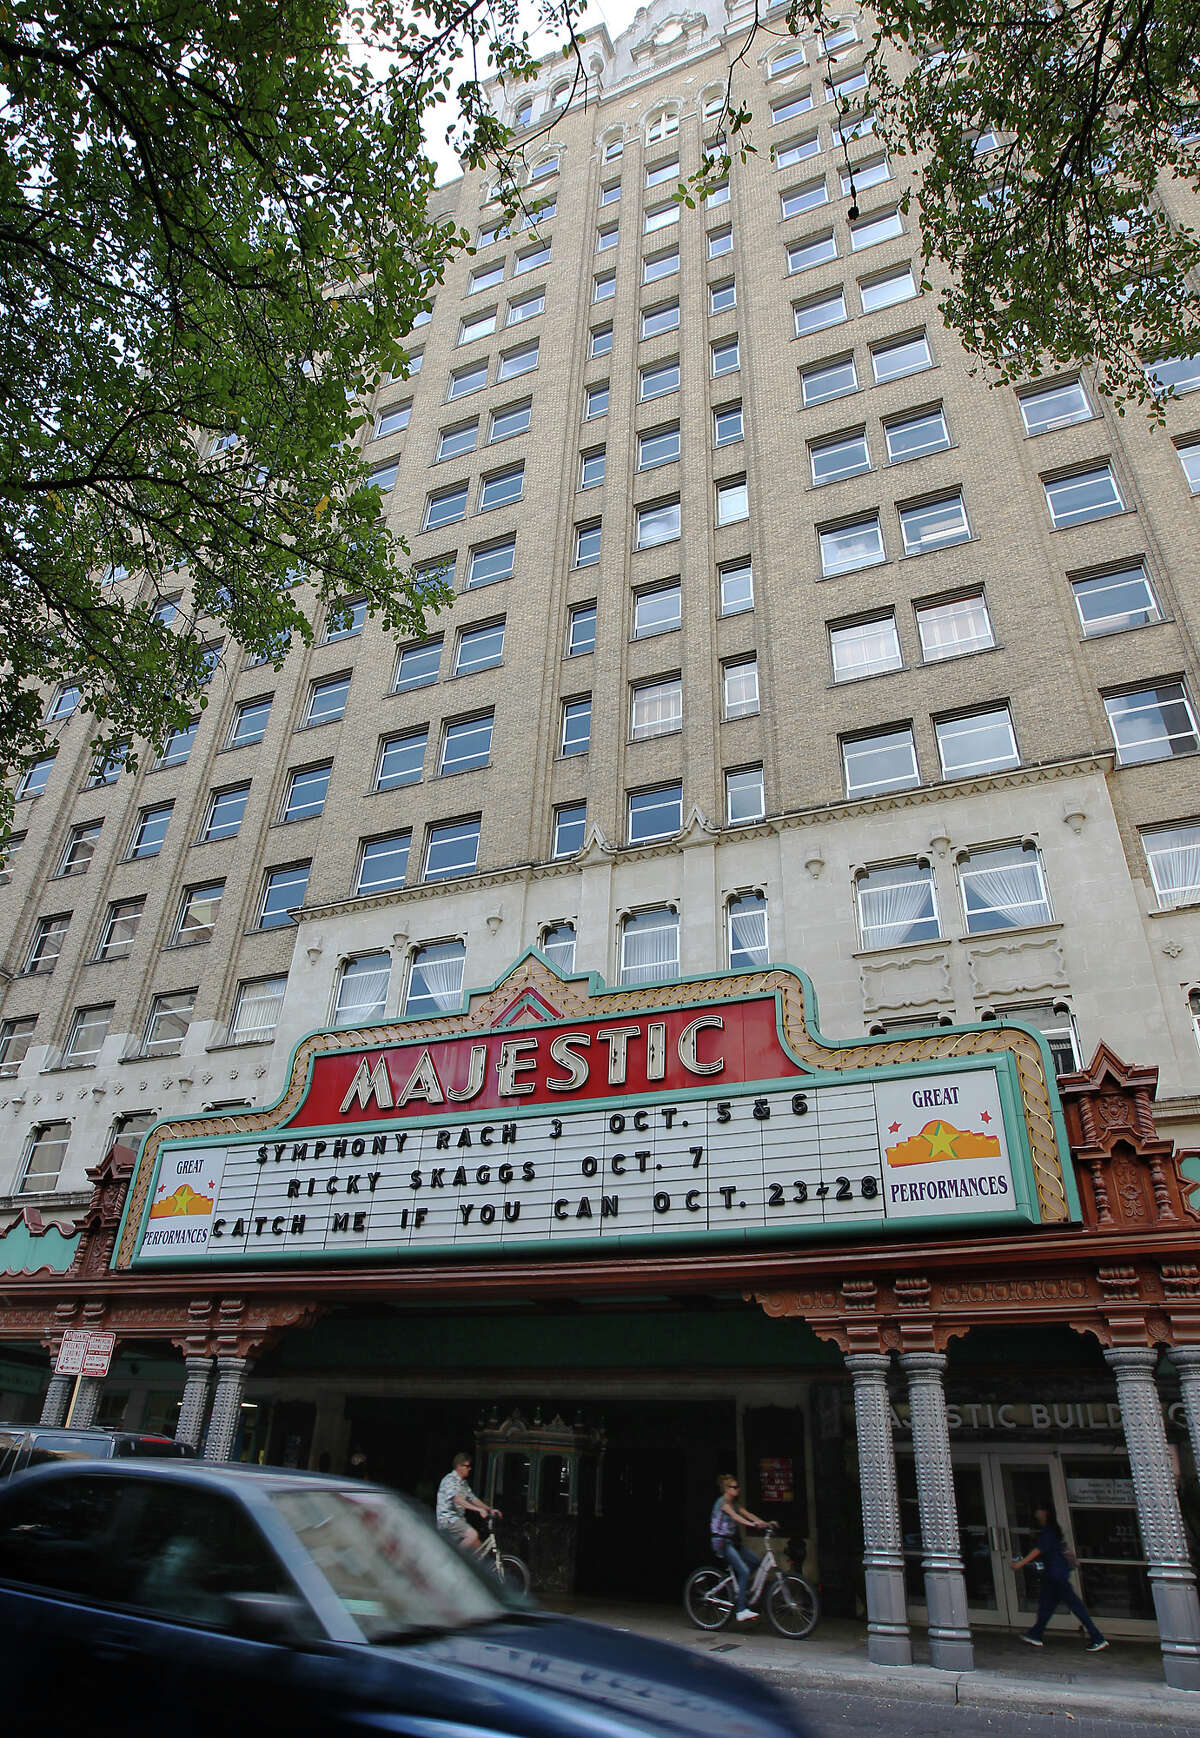 View of the Majestic Theater on Wednesday, Sept. 26, 2012.